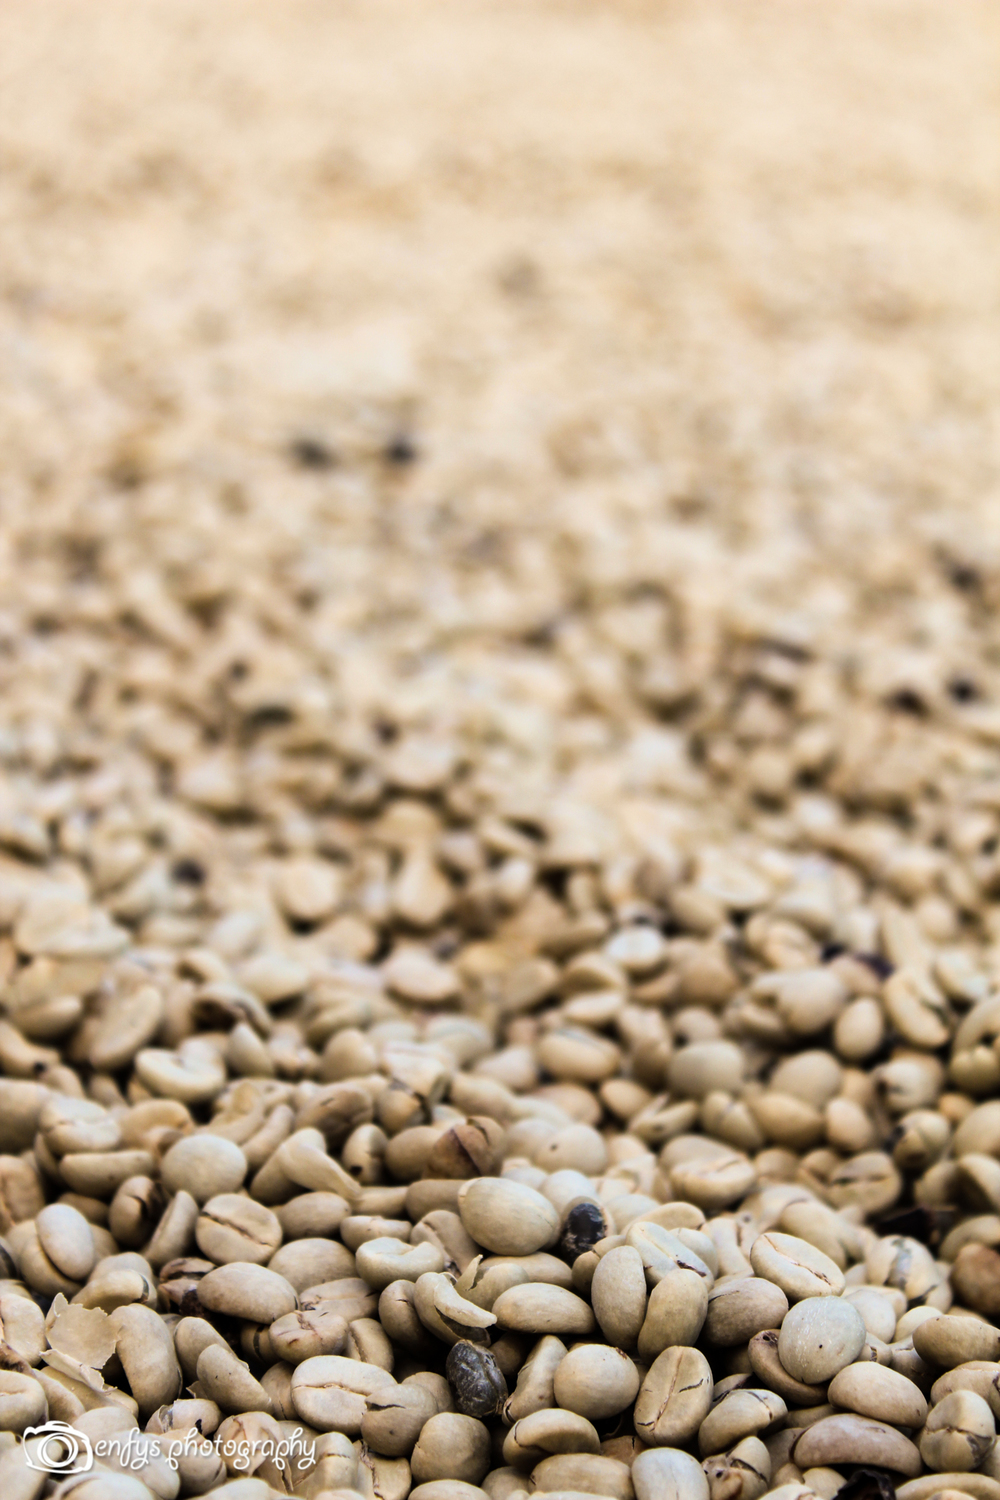 More coffee beans (Click to enlarge)  -San Pedro la Laguna, Guatemala